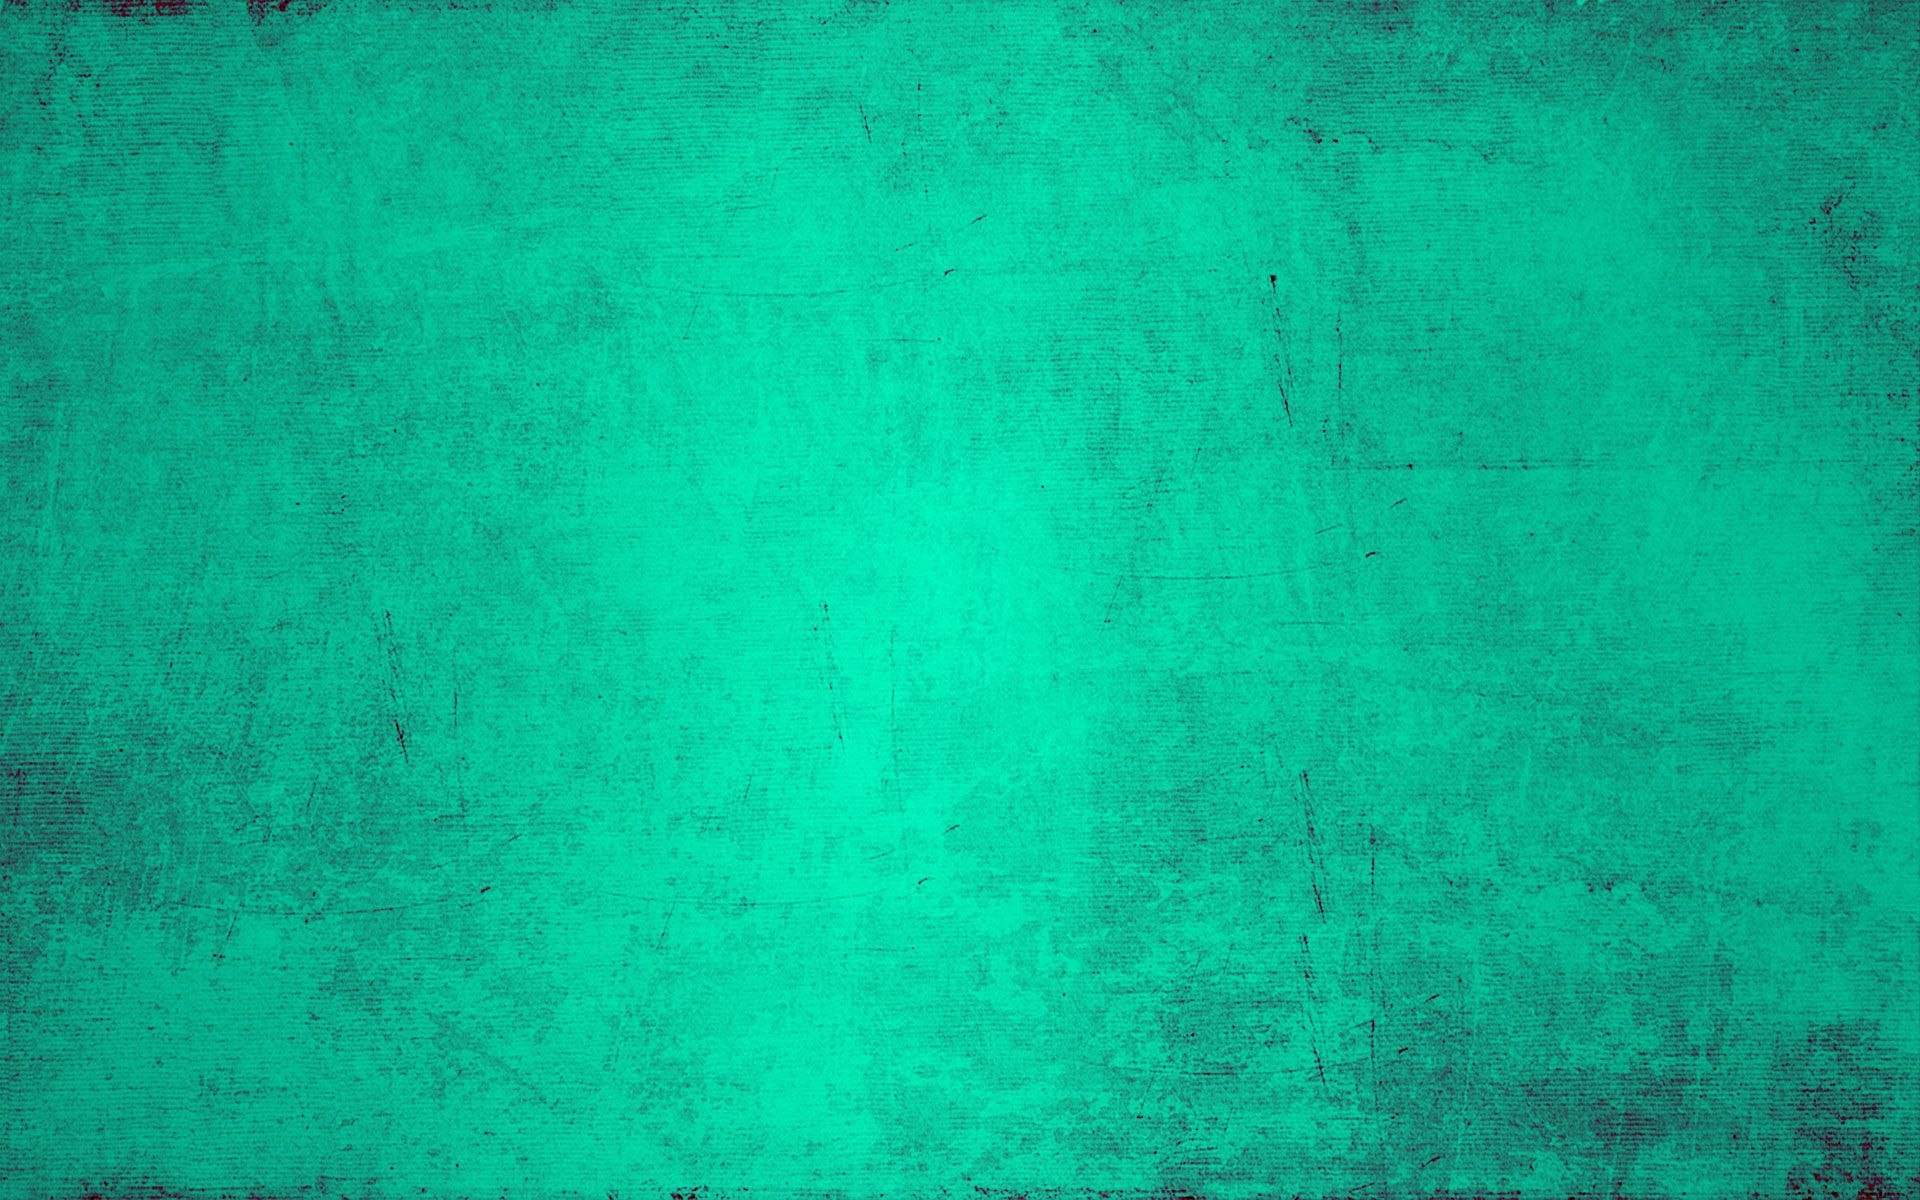 Turquoise Texture Wallpapers 3851